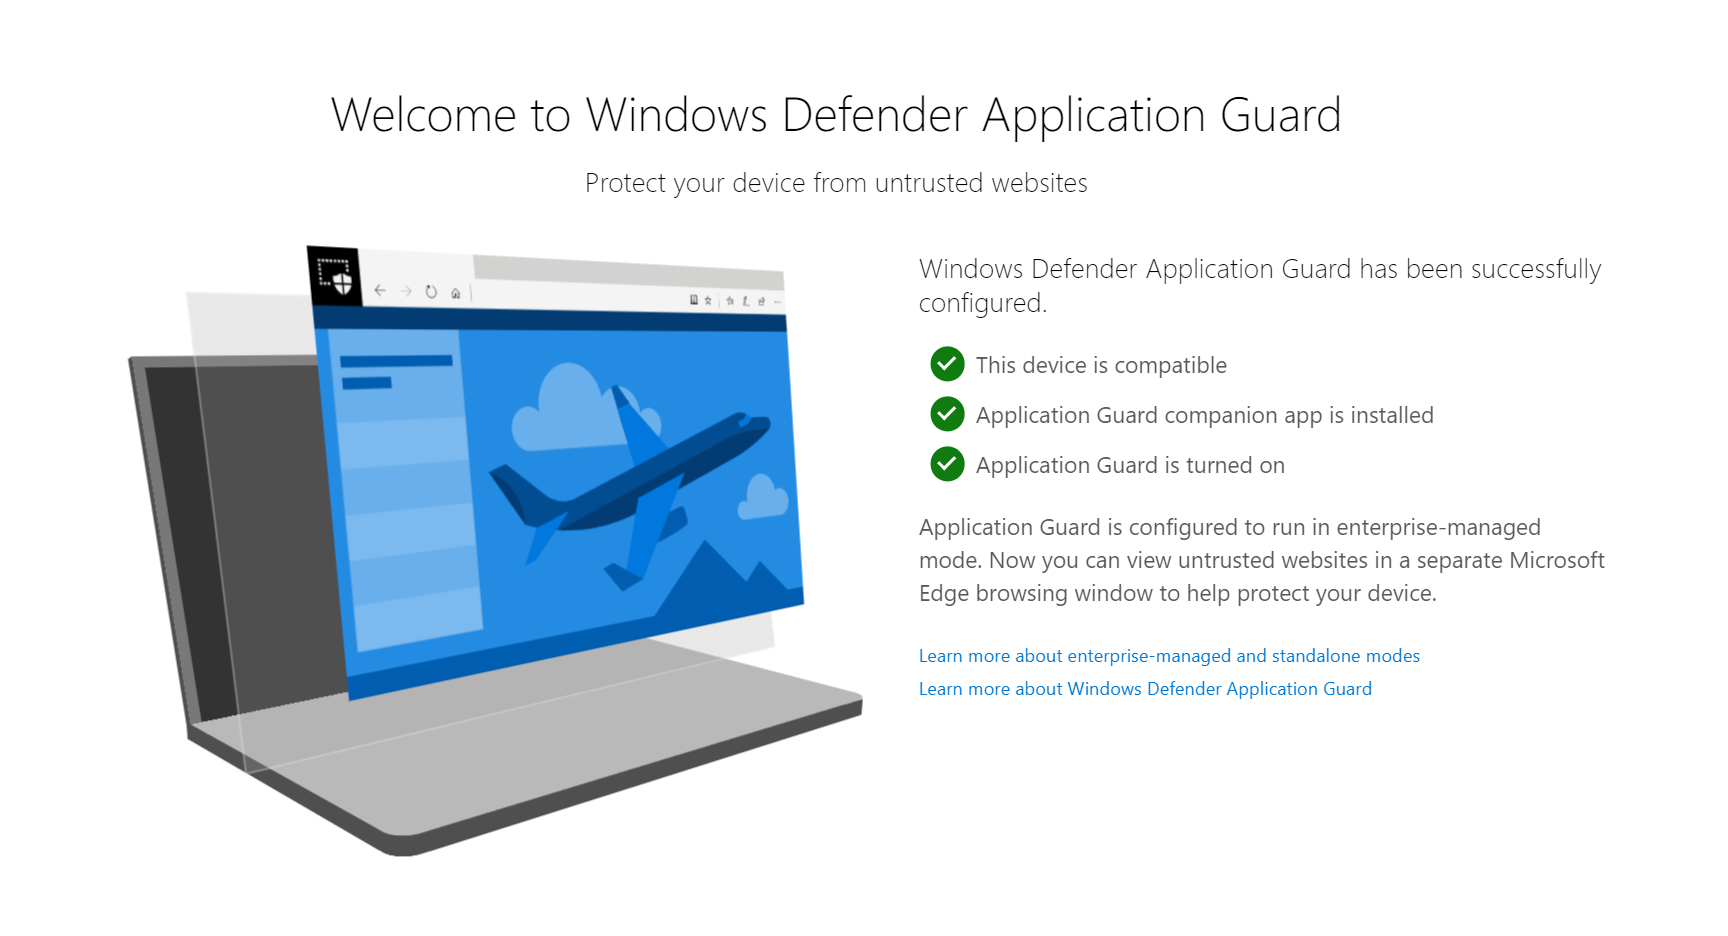 Right Click: To Open Link in New Application Guard Window windows-defender-application-guard-components-complete.png